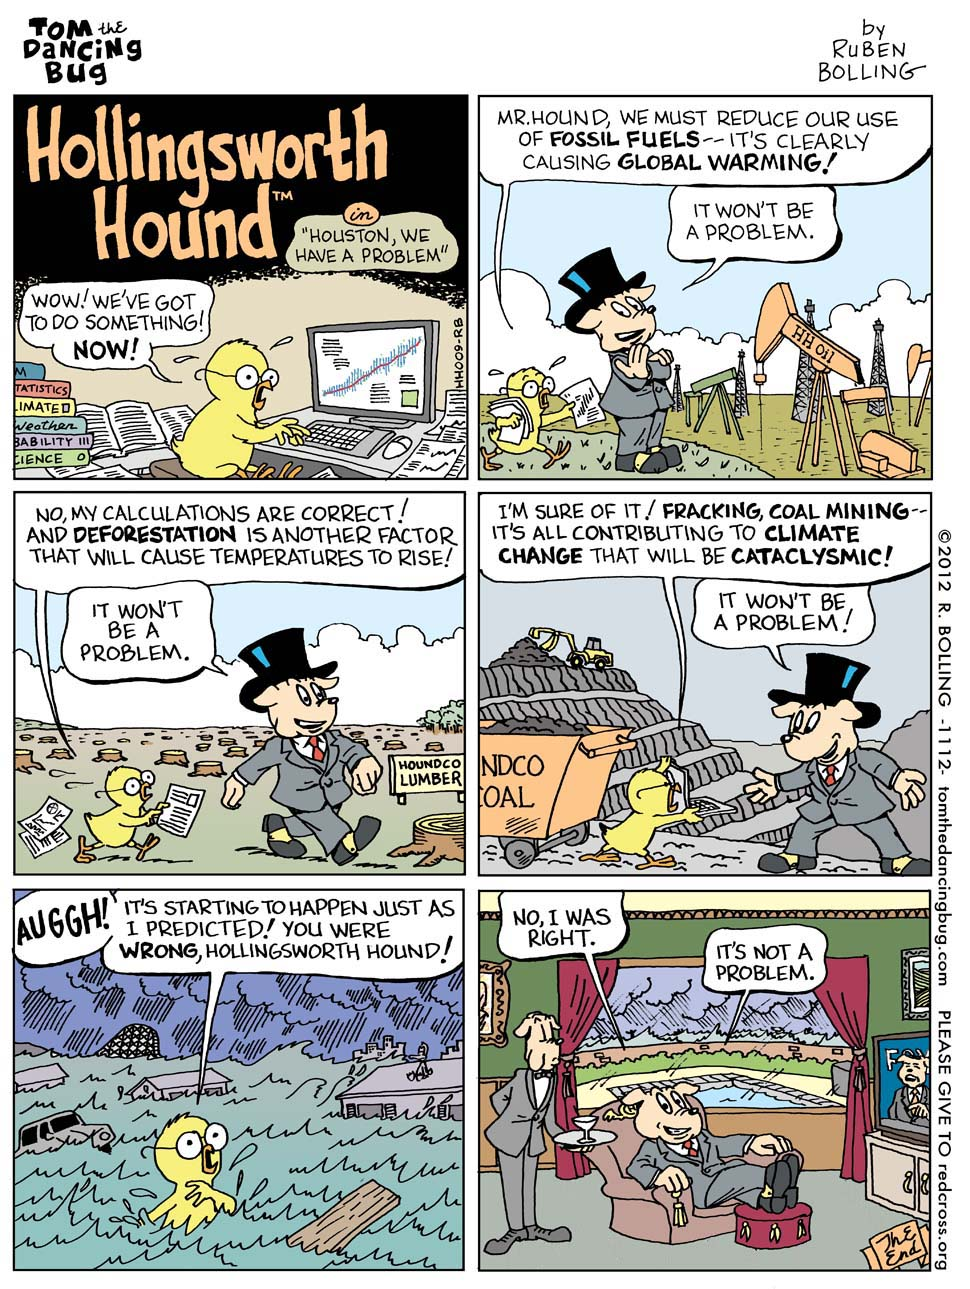 http://boingboing.net/wp-content/uploads/2012/11/1112cbCOMIC-hhound-climate-problem.jpg